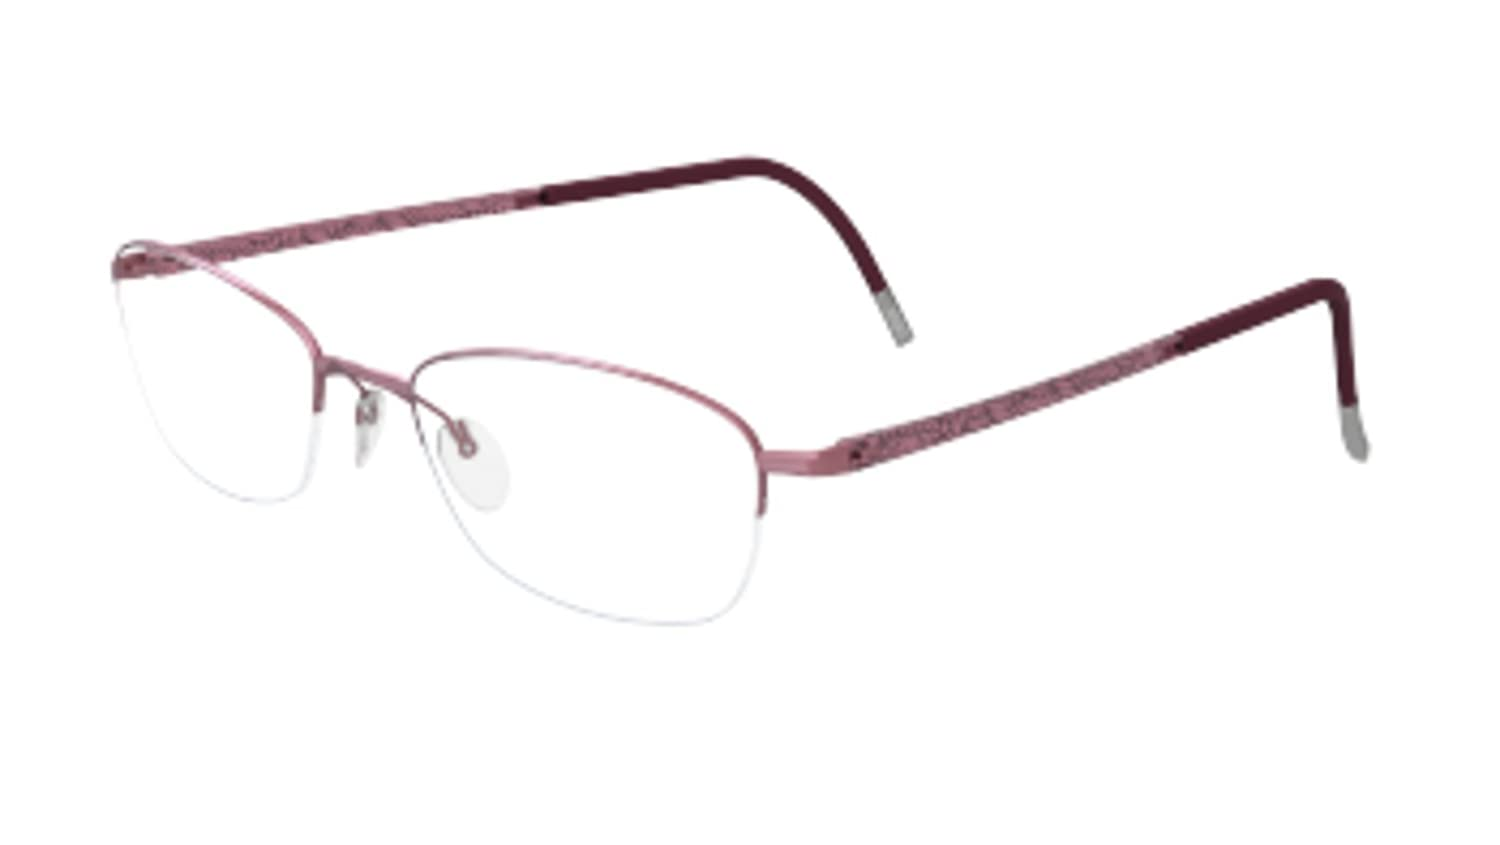 1b474135ebe Amazon.com  Silhouette Eyeglasses Illusion Nylor 4453 White (6053 ...